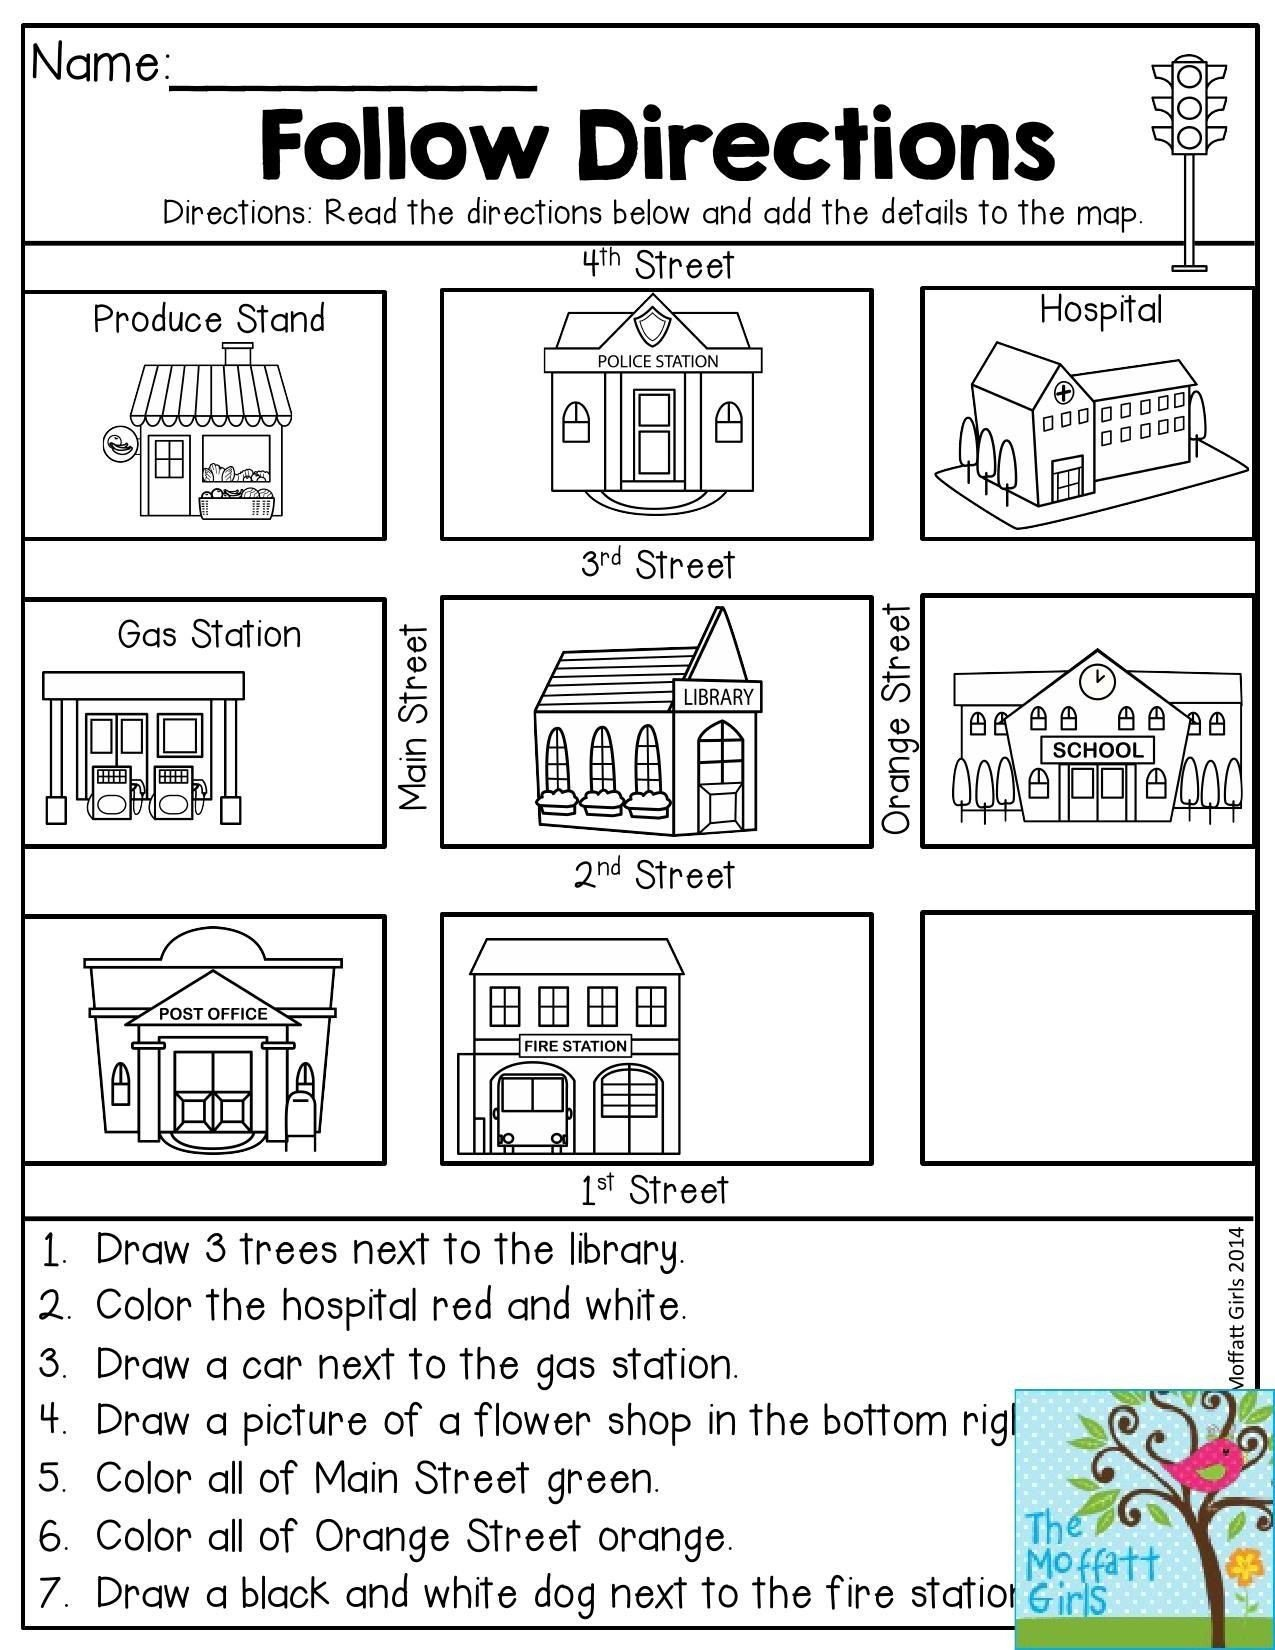 Social Skills Worksheets for Kindergarten 1st Grade Vocabulary Worksheets